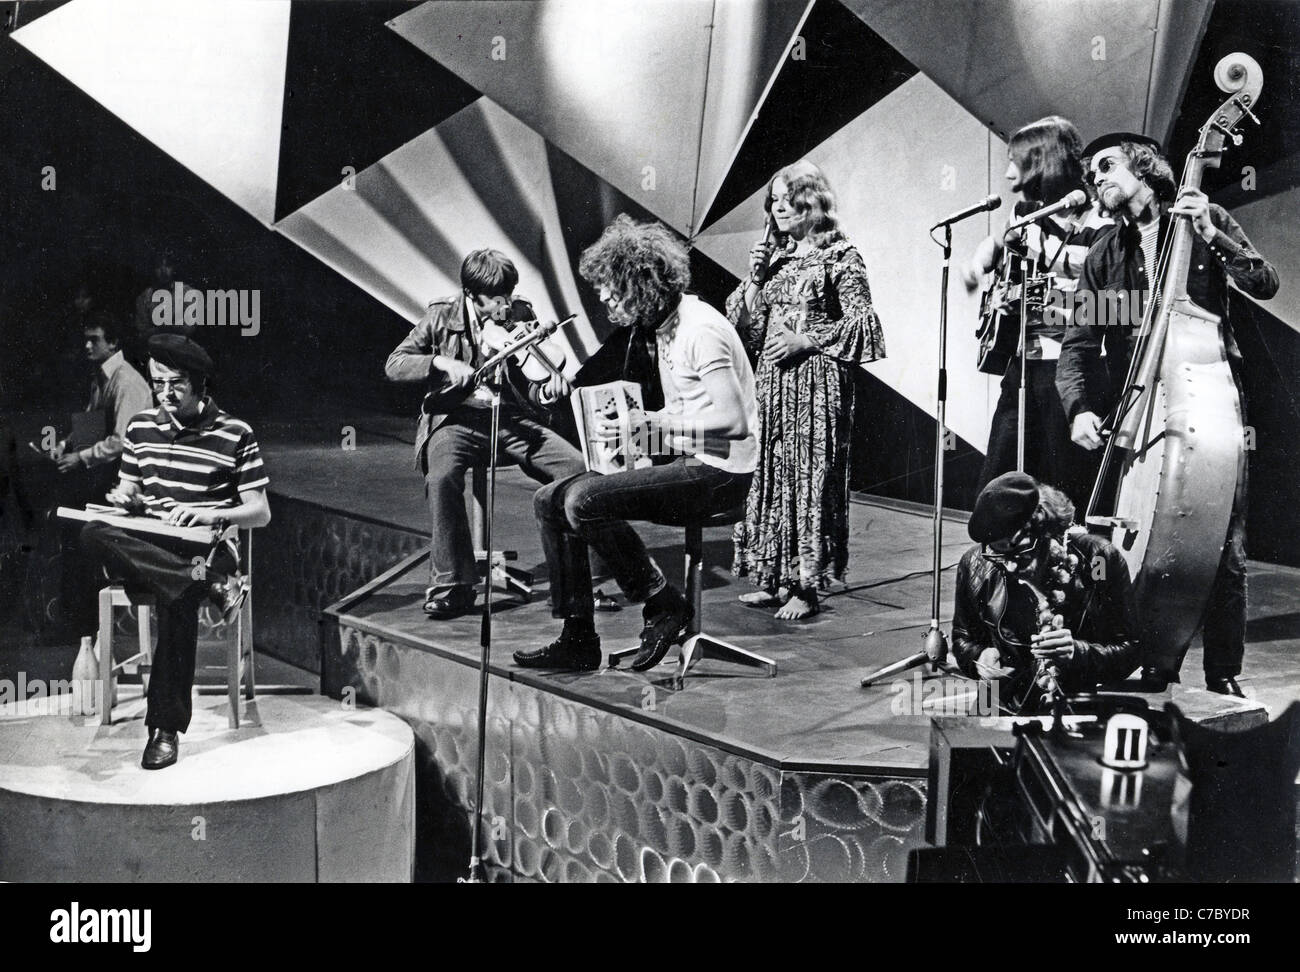 FAIRPORT CONVENTION UK folk rock group in 1968. See Description below. Photo Tony Gale - Stock Image